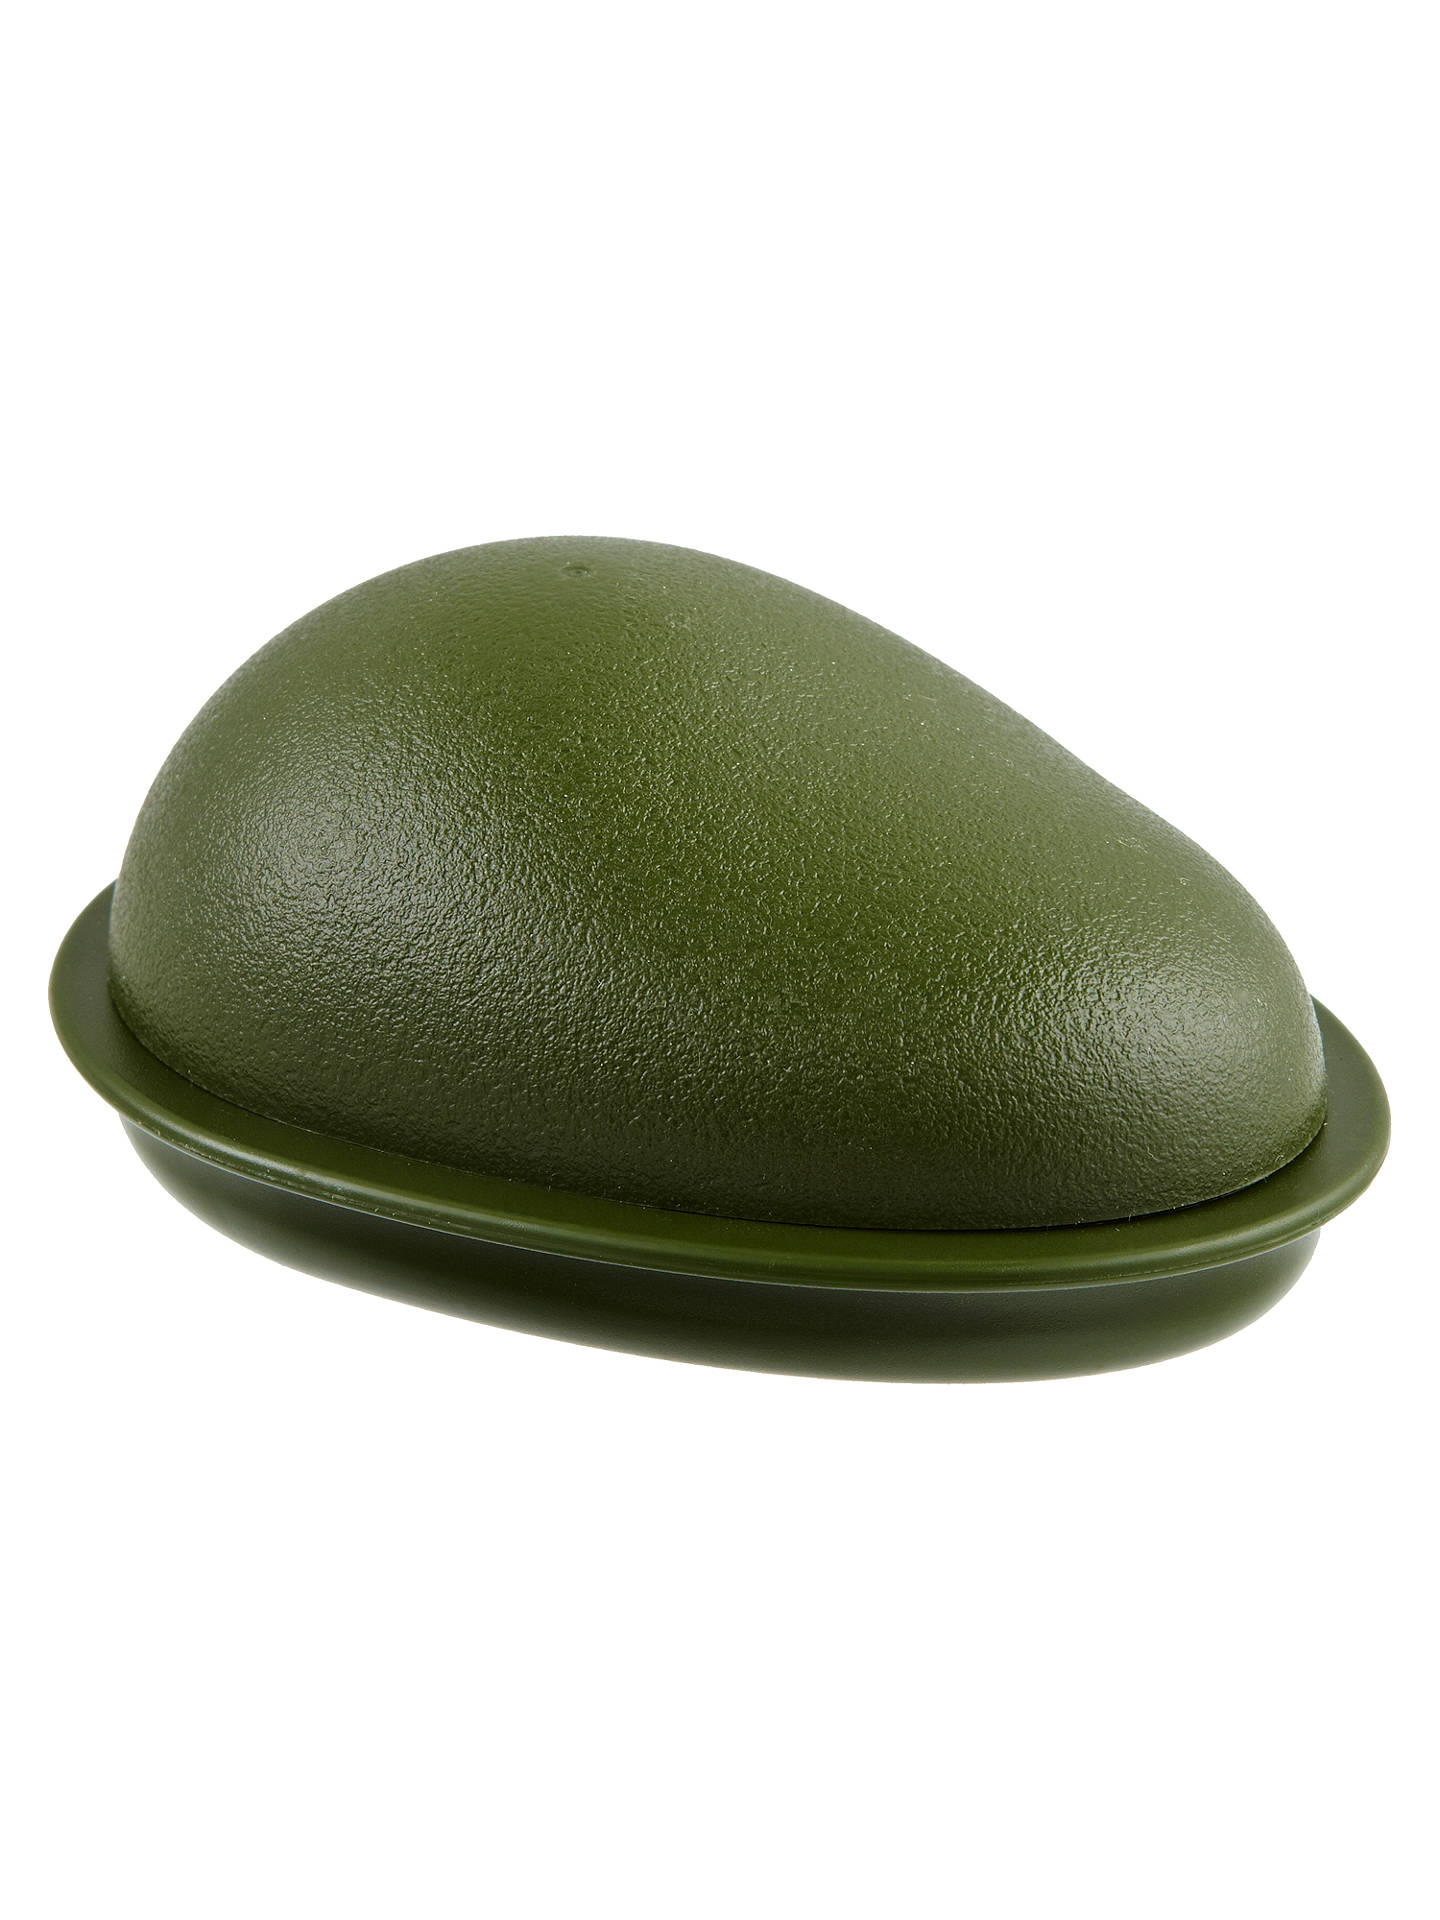 BuyJoie Avocado Storage Pod Online at johnlewis.com